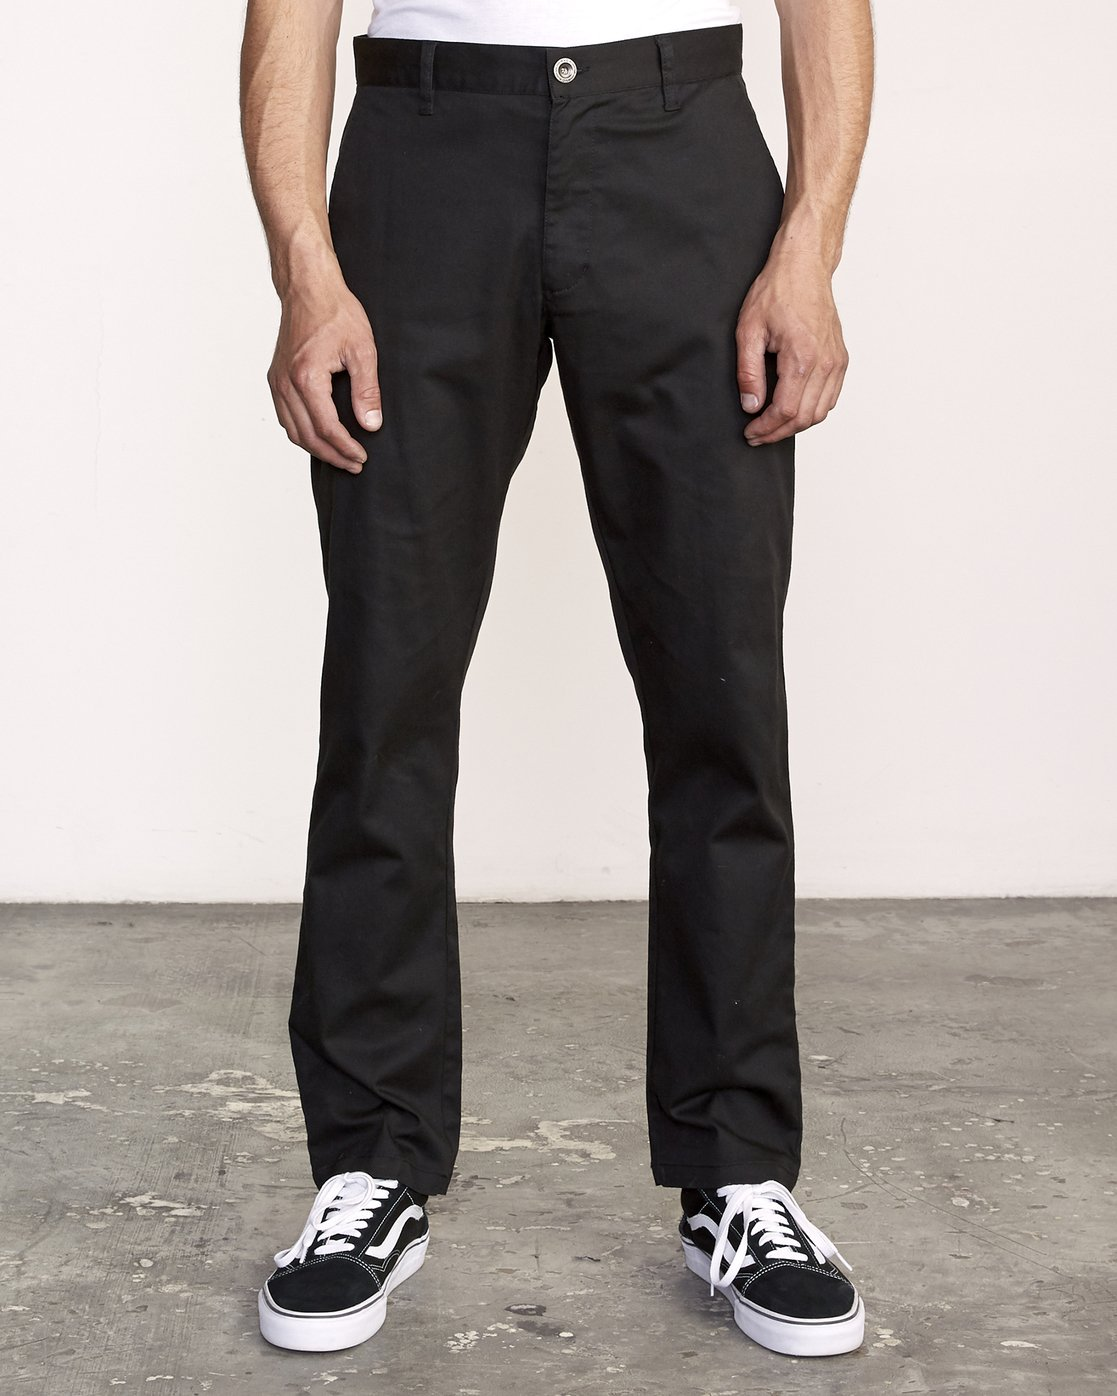 0 The Weekend Stretch - Woven Trousers for Men Black S1PTRFRVP0 RVCA